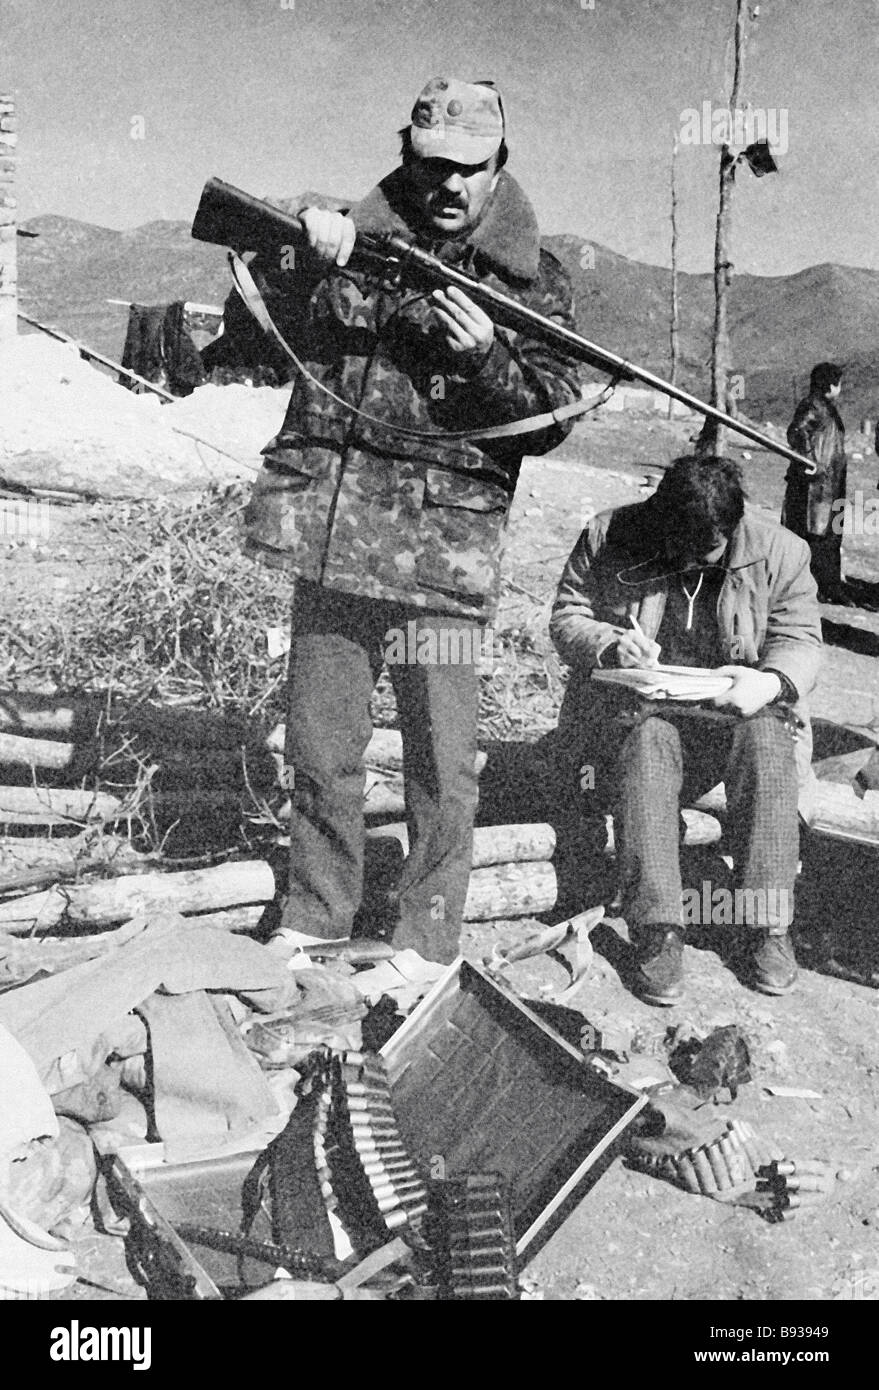 Servicemen listing the arms confiscated from the Spitakshen village detainees during the Armenian Azeri conflict - Stock Image